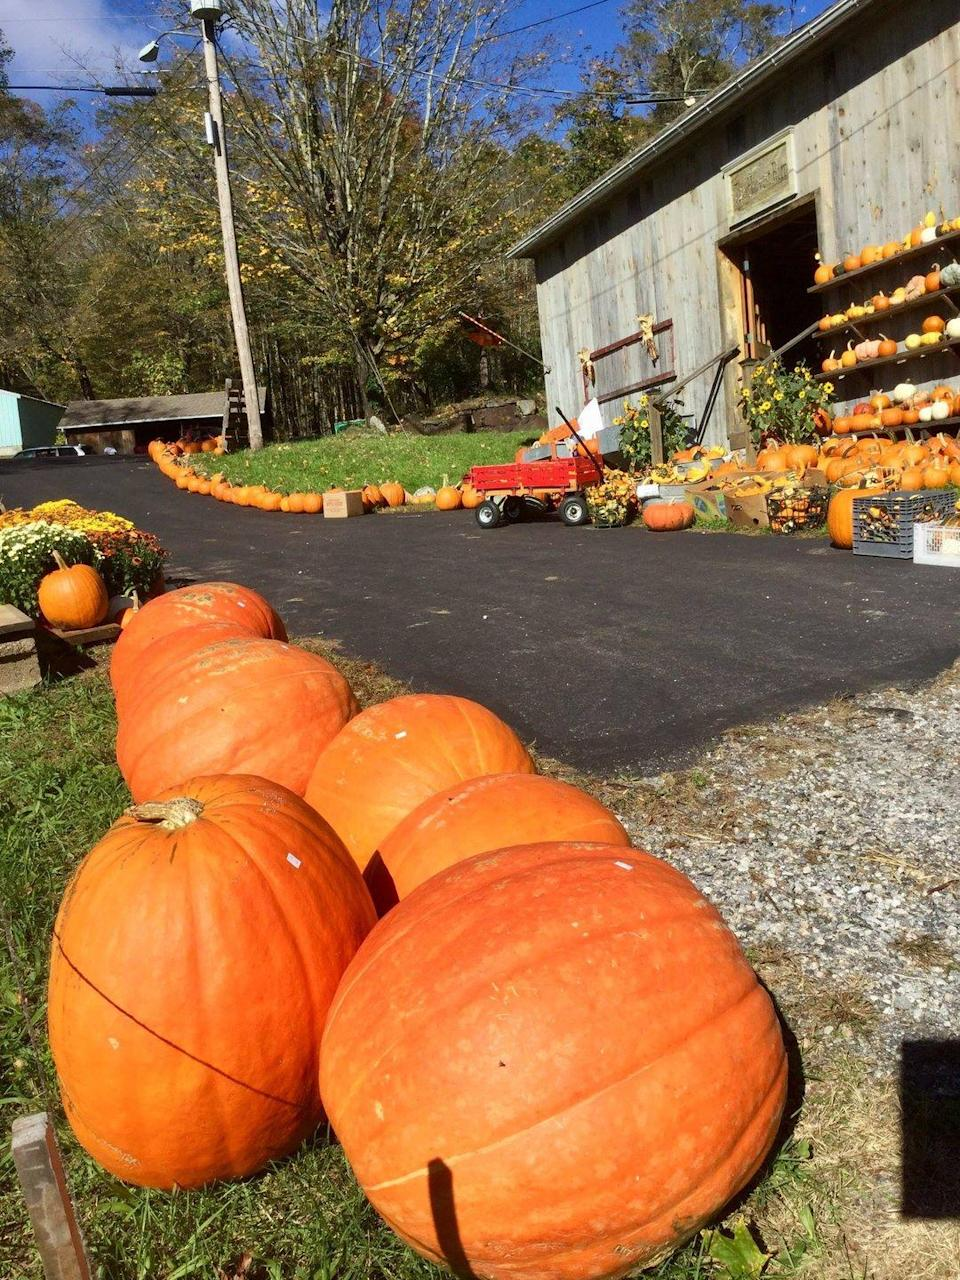 """<p>If you were hoping to snap a few family photos for this year's Christmas card during your pumpkin-picking adventure, <a href=""""http://angevinefarm.com/"""" rel=""""nofollow noopener"""" target=""""_blank"""" data-ylk=""""slk:Angevine Farm"""" class=""""link rapid-noclick-resp"""">Angevine Farm </a>is a good bet. The farm's pumpkin patch overlooks a series of stunning hills. After you've selected a few orange beauties, head to the Harvest Barn shop, where maple syrup and local honey await.</p><p><a class=""""link rapid-noclick-resp"""" href=""""https://go.redirectingat.com?id=74968X1596630&url=https%3A%2F%2Fwww.tripadvisor.com%2FAttraction_Review-g33960-d5513097-Reviews-Angevine_Farm-Warren_Connecticut.html&sref=https%3A%2F%2Fwww.countryliving.com%2Flife%2Ftravel%2Fg21273436%2Fpumpkin-farms-near-me%2F"""" rel=""""nofollow noopener"""" target=""""_blank"""" data-ylk=""""slk:PLAN YOUR TRIP"""">PLAN YOUR TRIP</a></p>"""